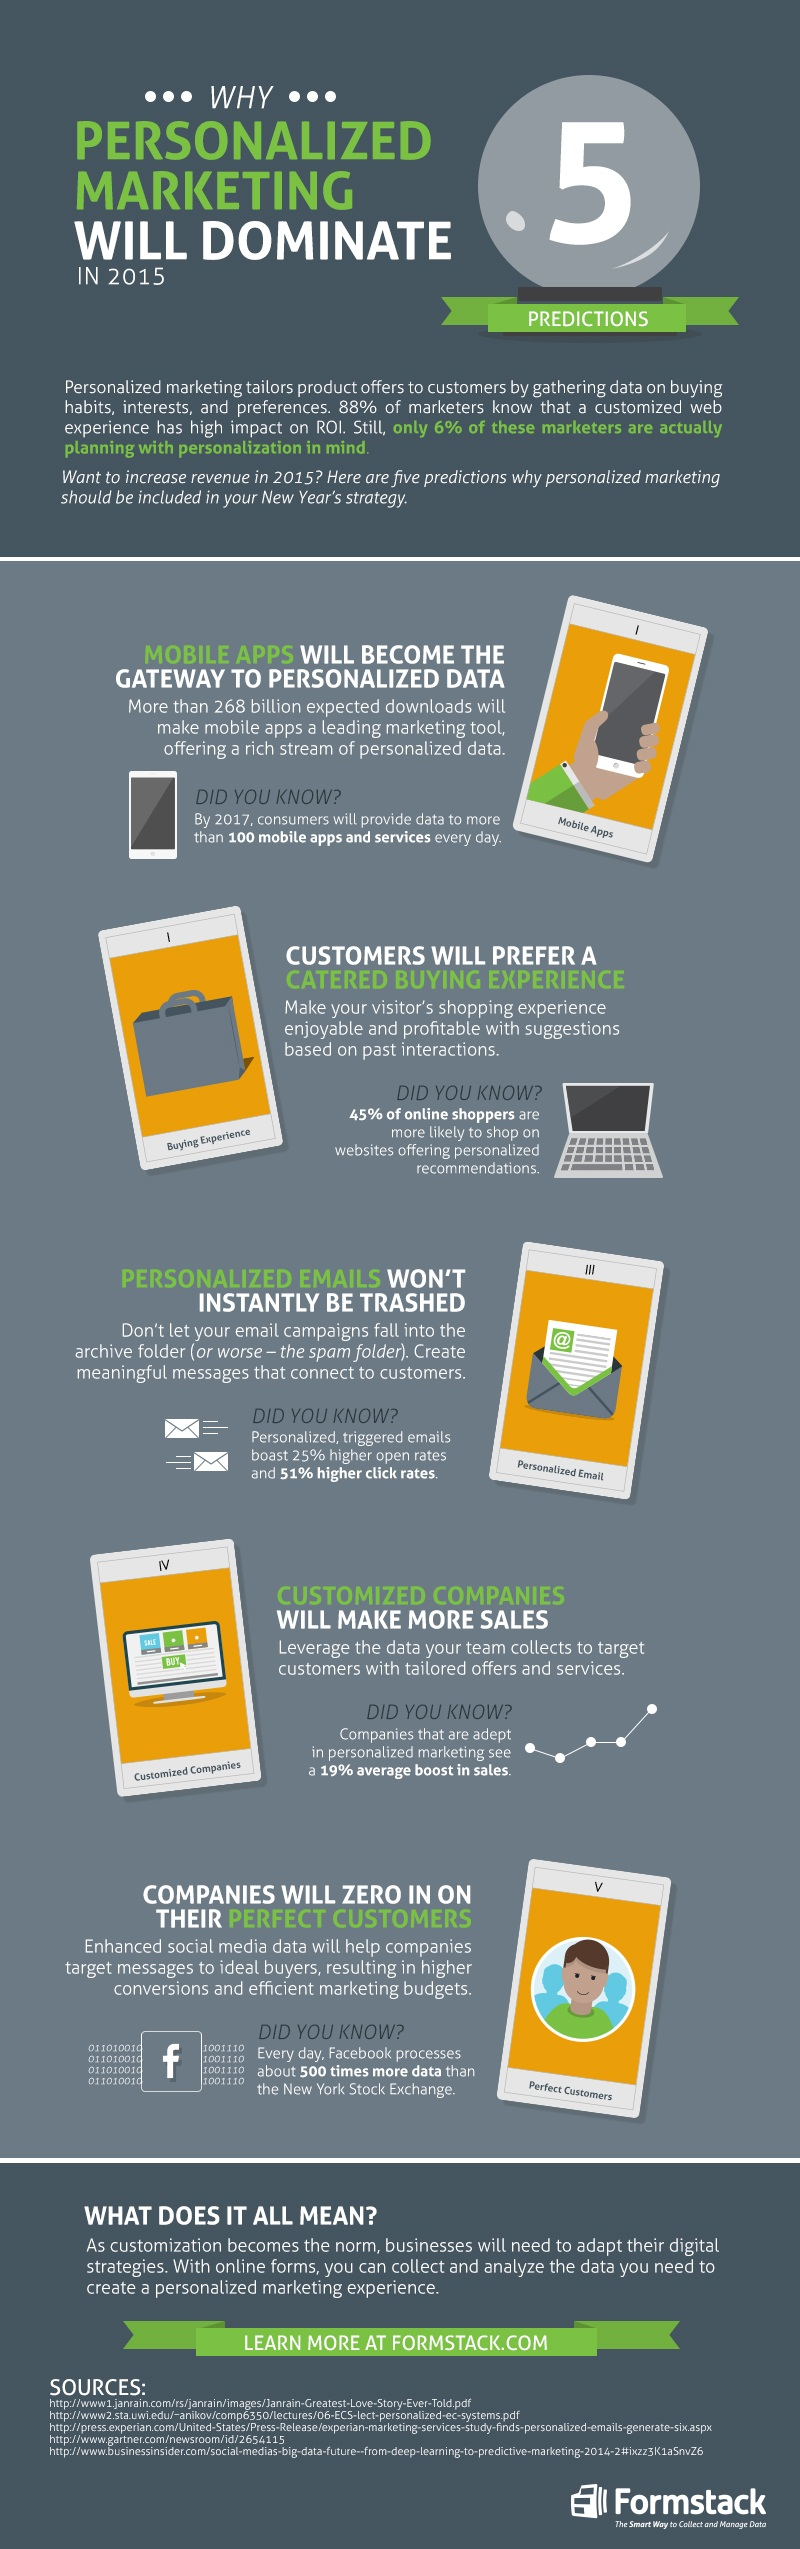 5 Prediction: Why Personalized Marketing Will Dominate in 2015 - #infographic